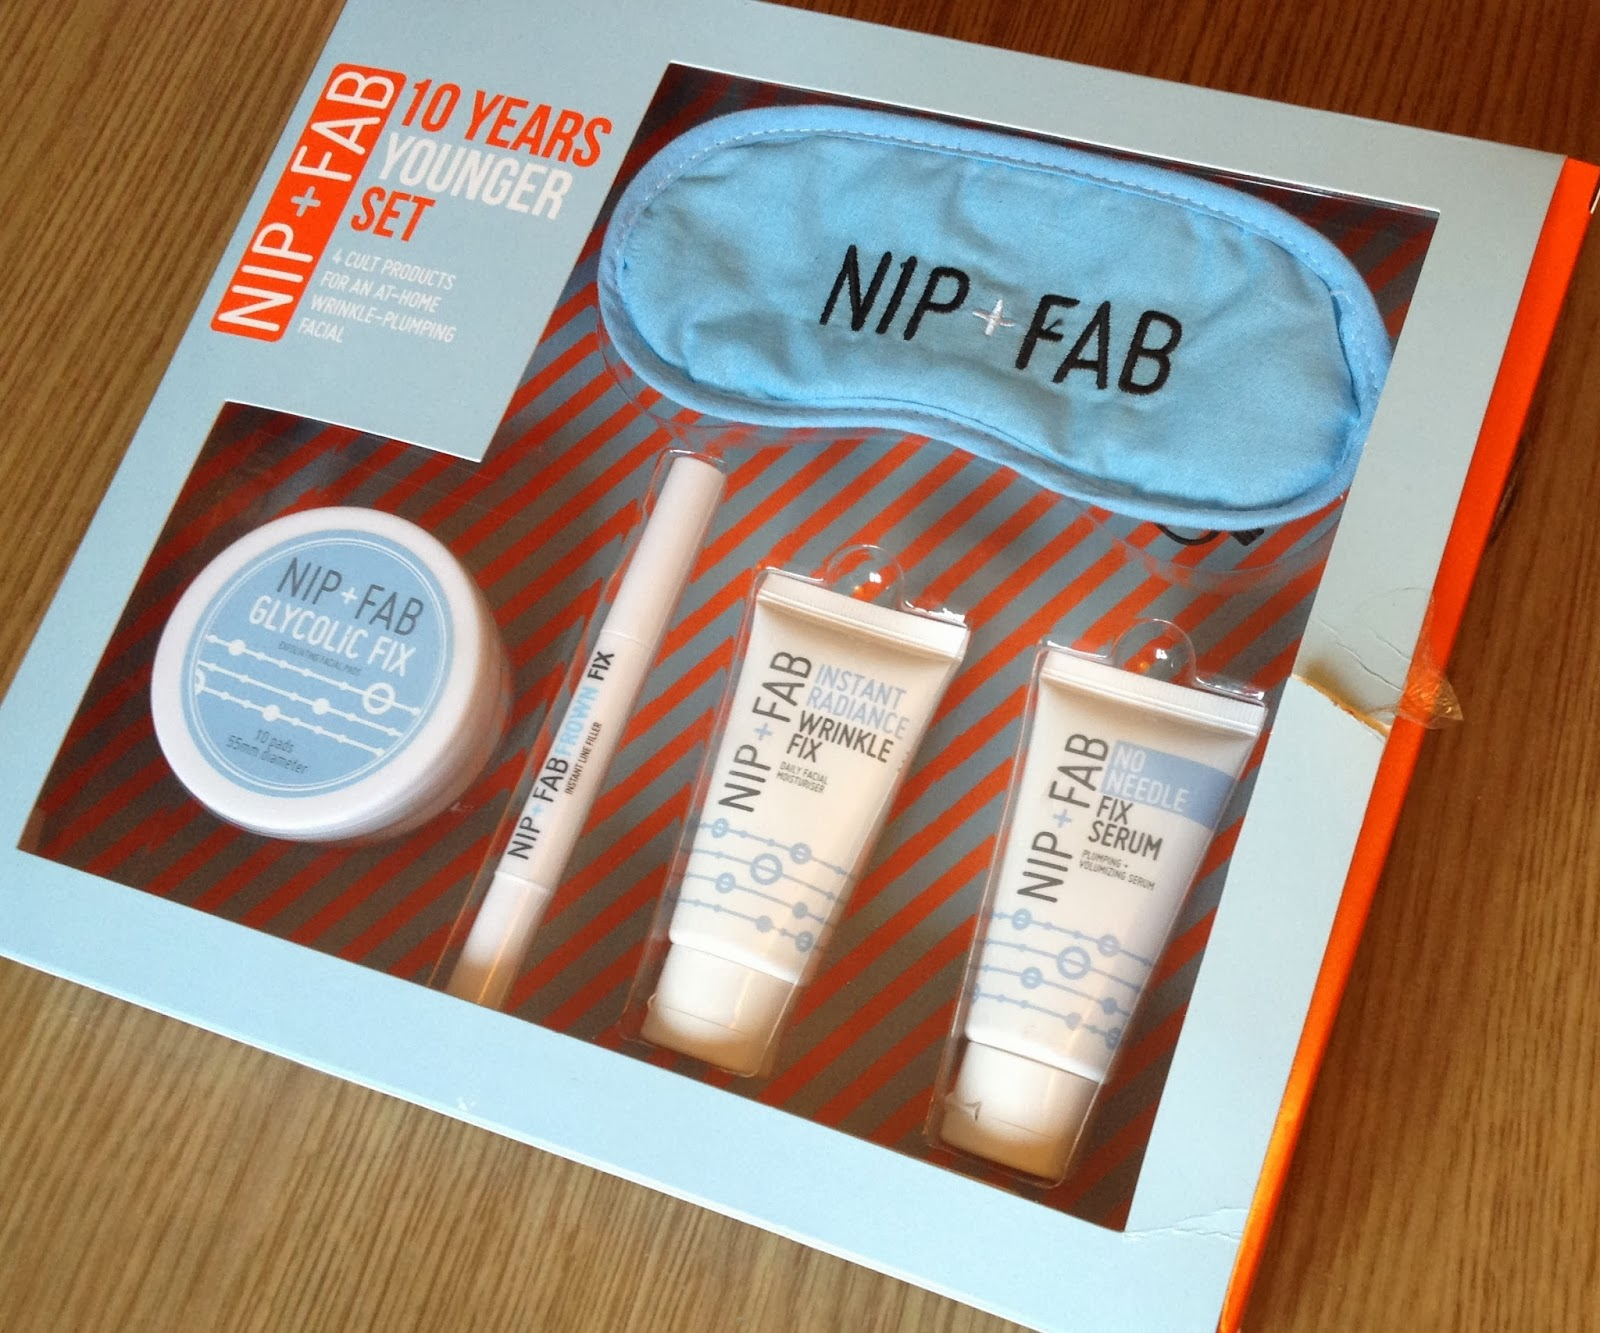 nip-and-fab-ten-years-younger-kit-glycolic-fix